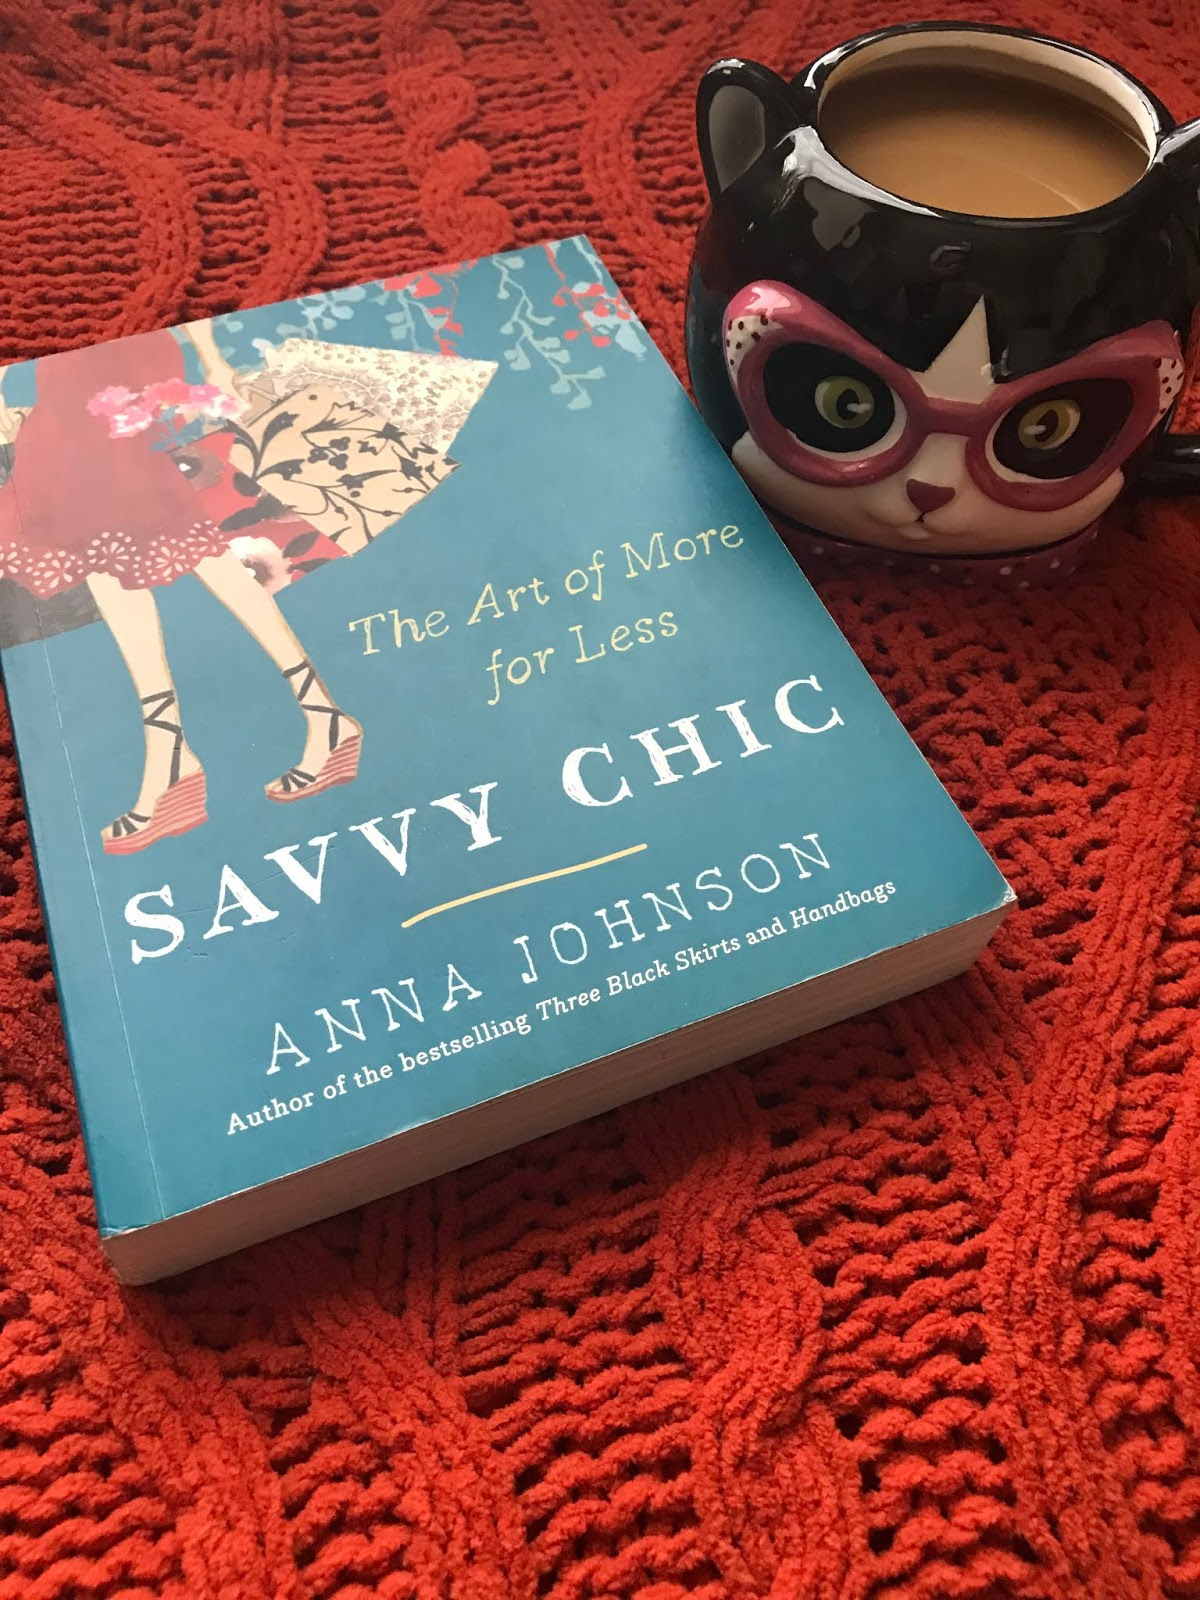 Image: Book and cat coffee cup. Book is by Ann Johnson. Bought by Tangie Bell and seen first on Bits and Babbles blog.The Joyful List:5 Savvy Life-Changing Things I Am Starting Right Now!